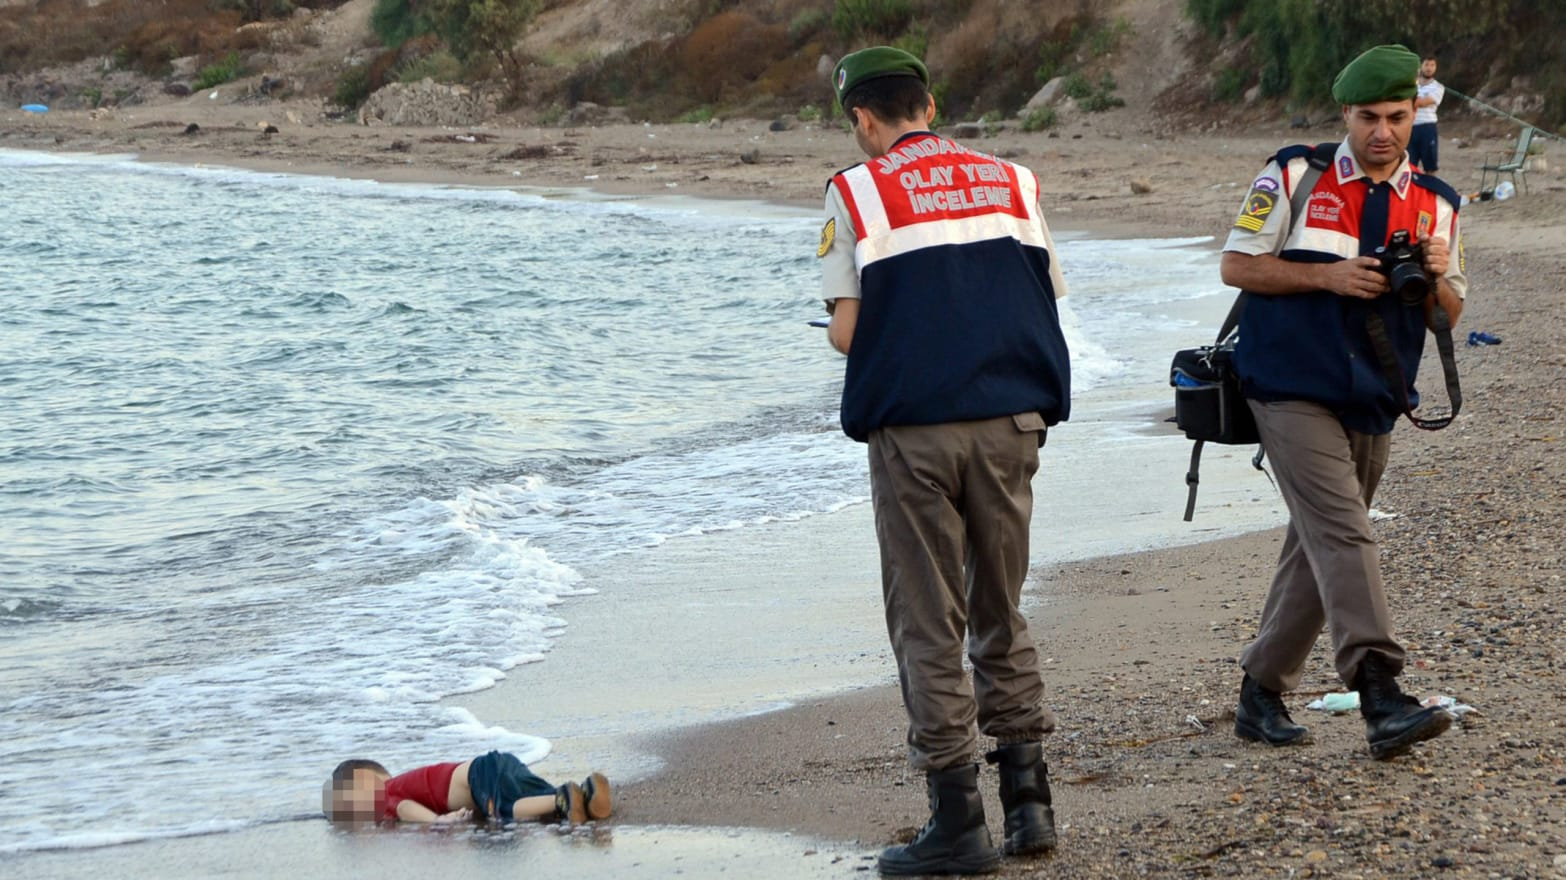 You Might As Well Ignore #KiyiyaVuranInsanlik and the Photos of Dead Refugee Kids